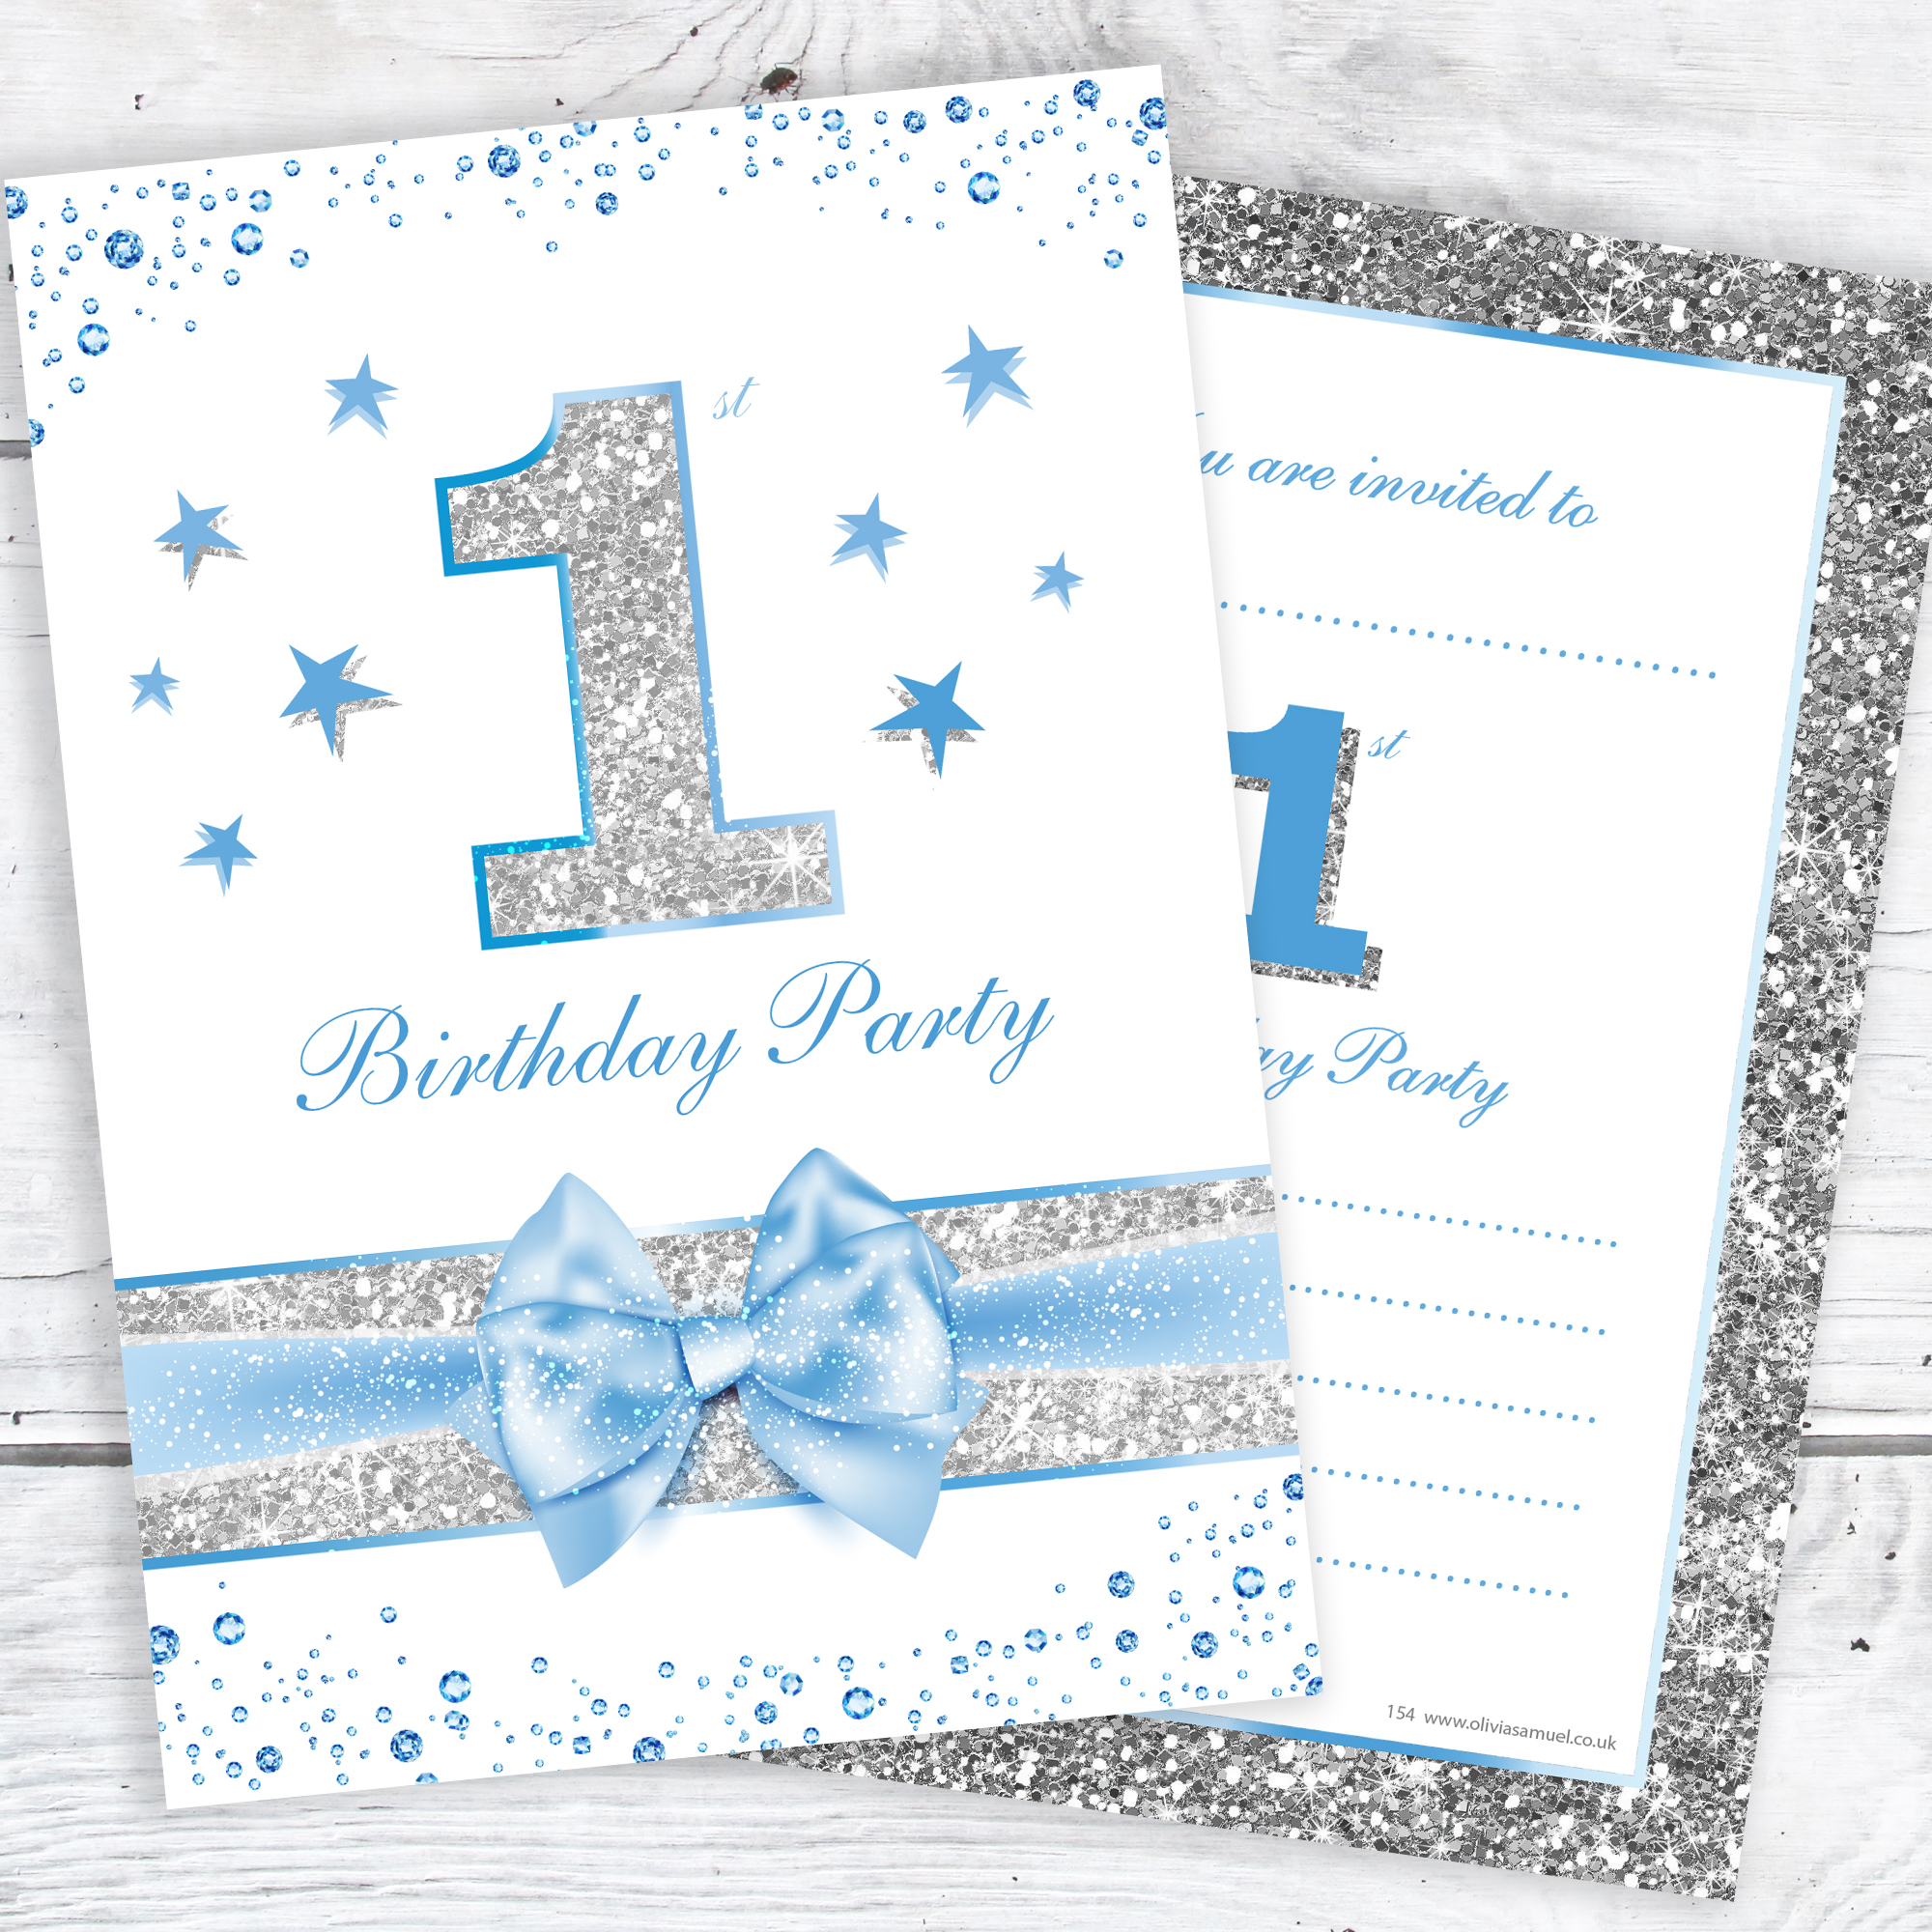 First Birthday Party Invitations Baby Boy Blue Sparkly Design And Photo Effect Silver Glitter Pack 10